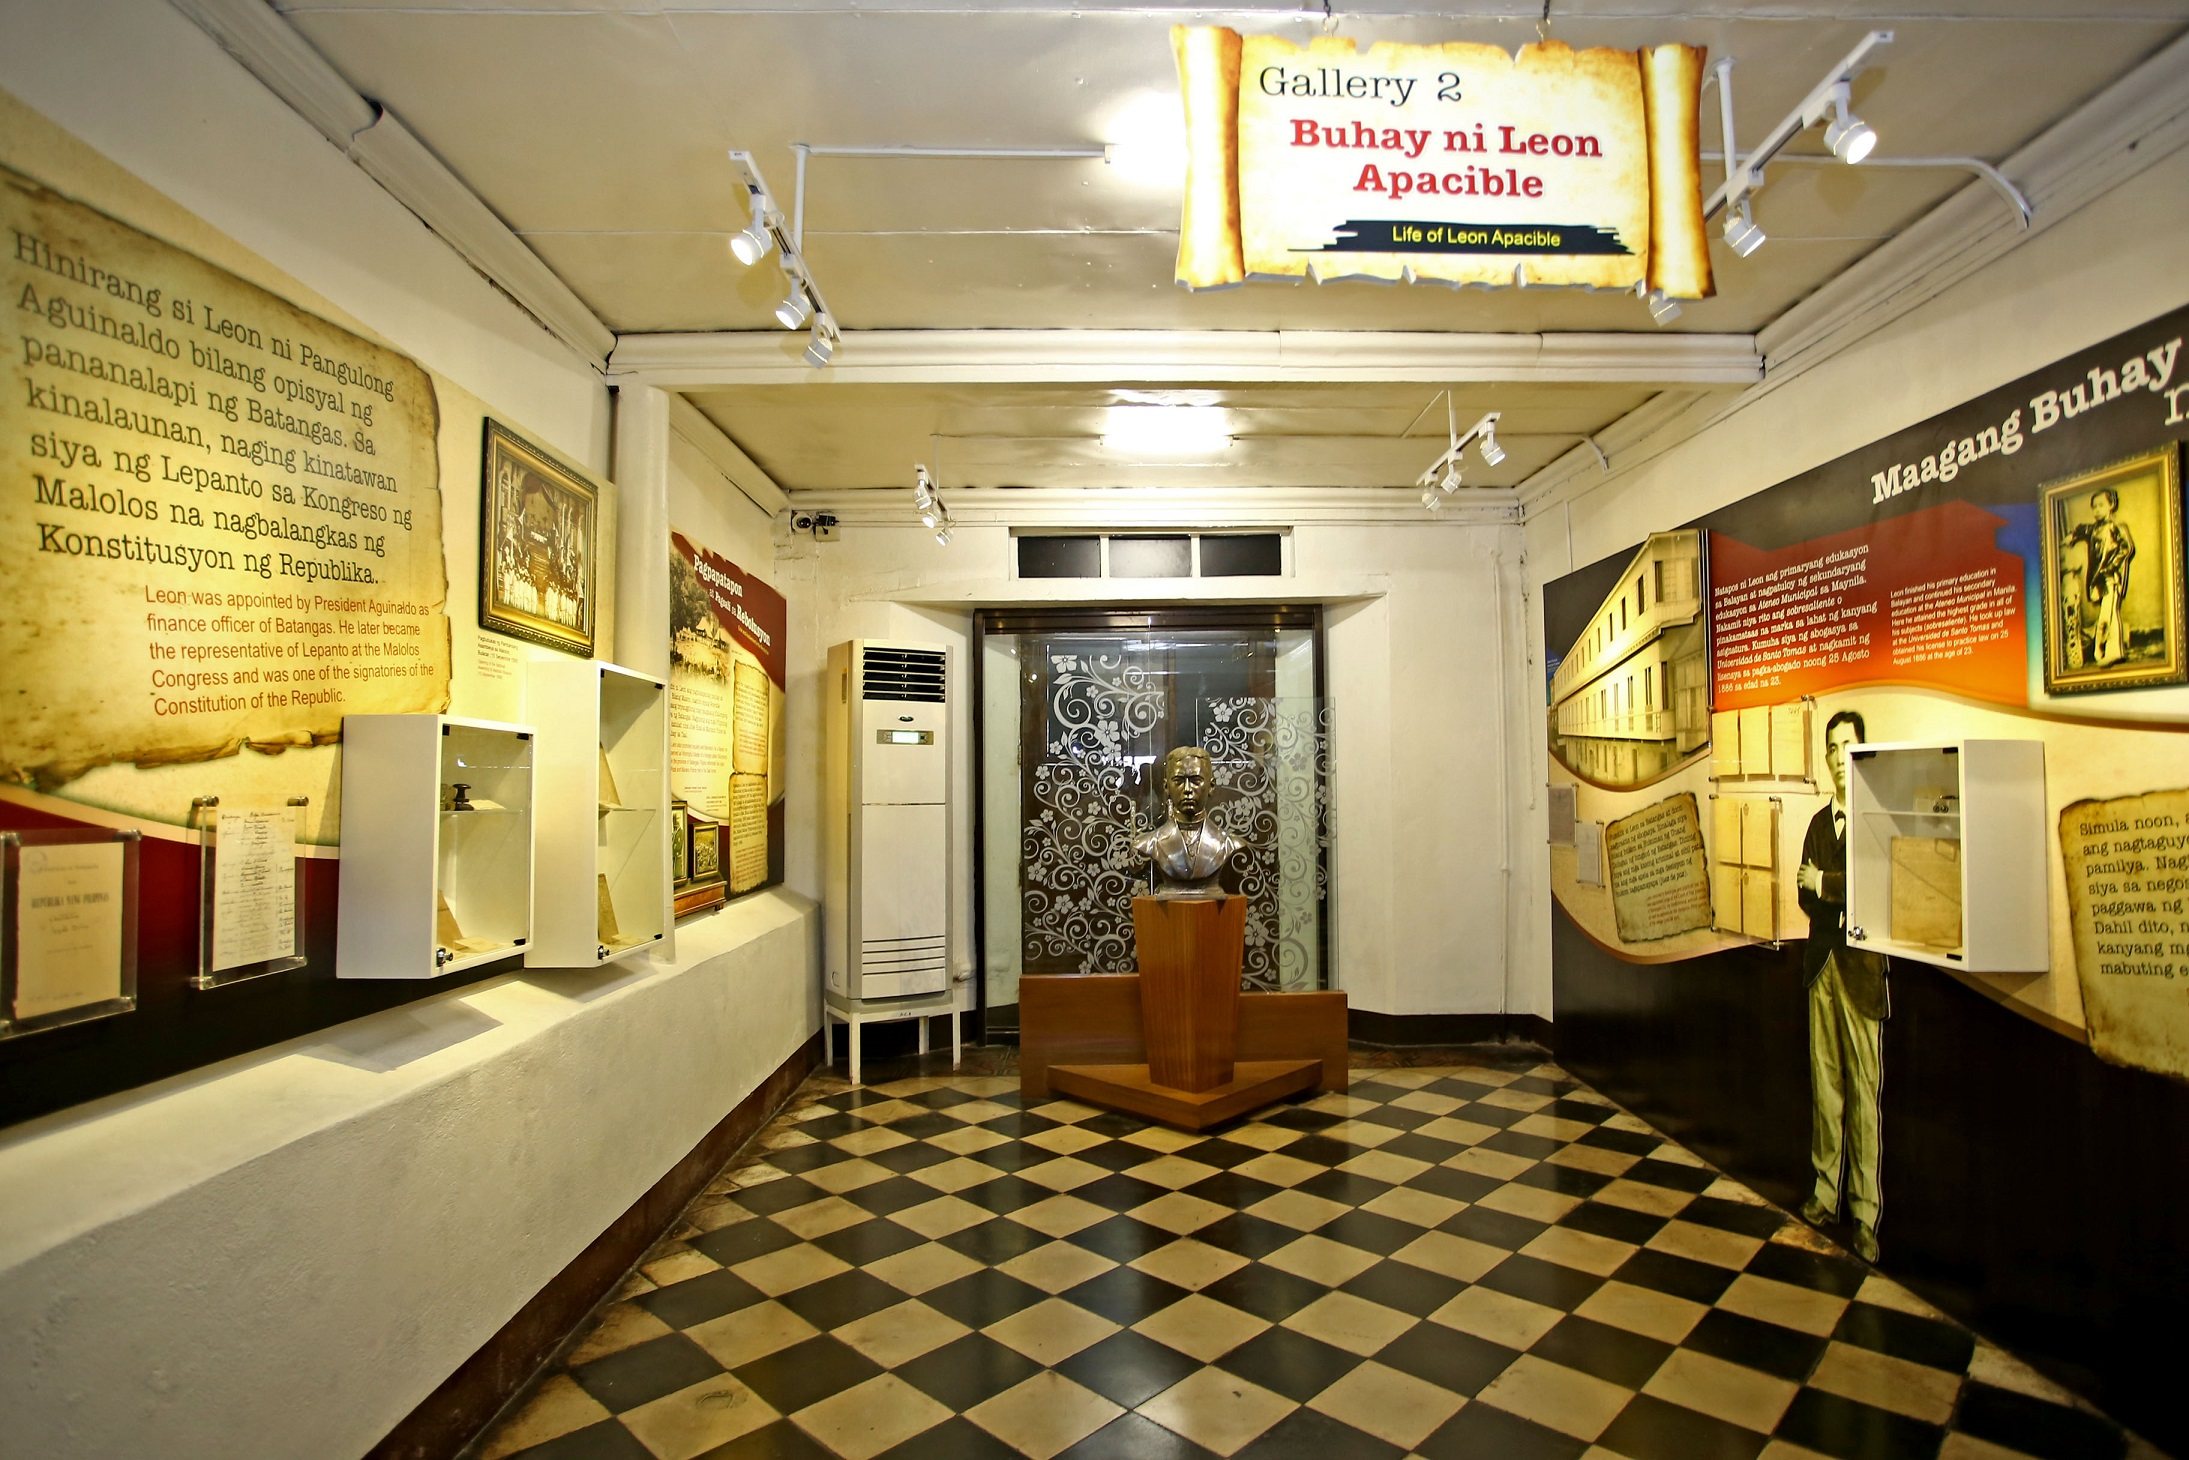 Leon & Galicano Apacible Museum Taal, Heritage houses in Taal now have touchscreens, interactive ...